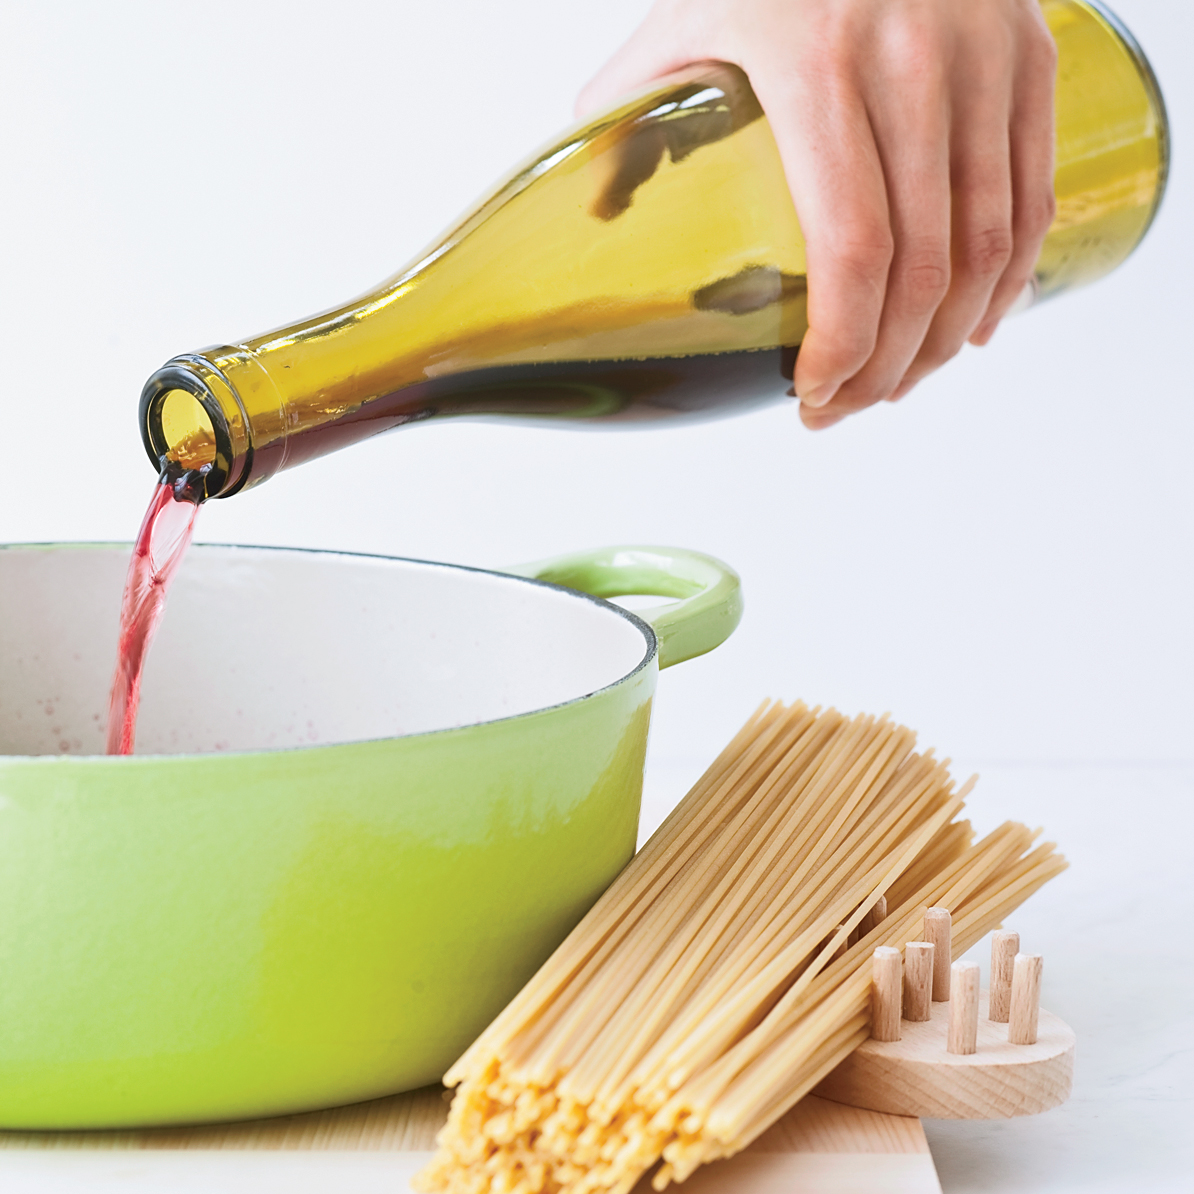 200909-r-red-wine-spaghetti.jpg